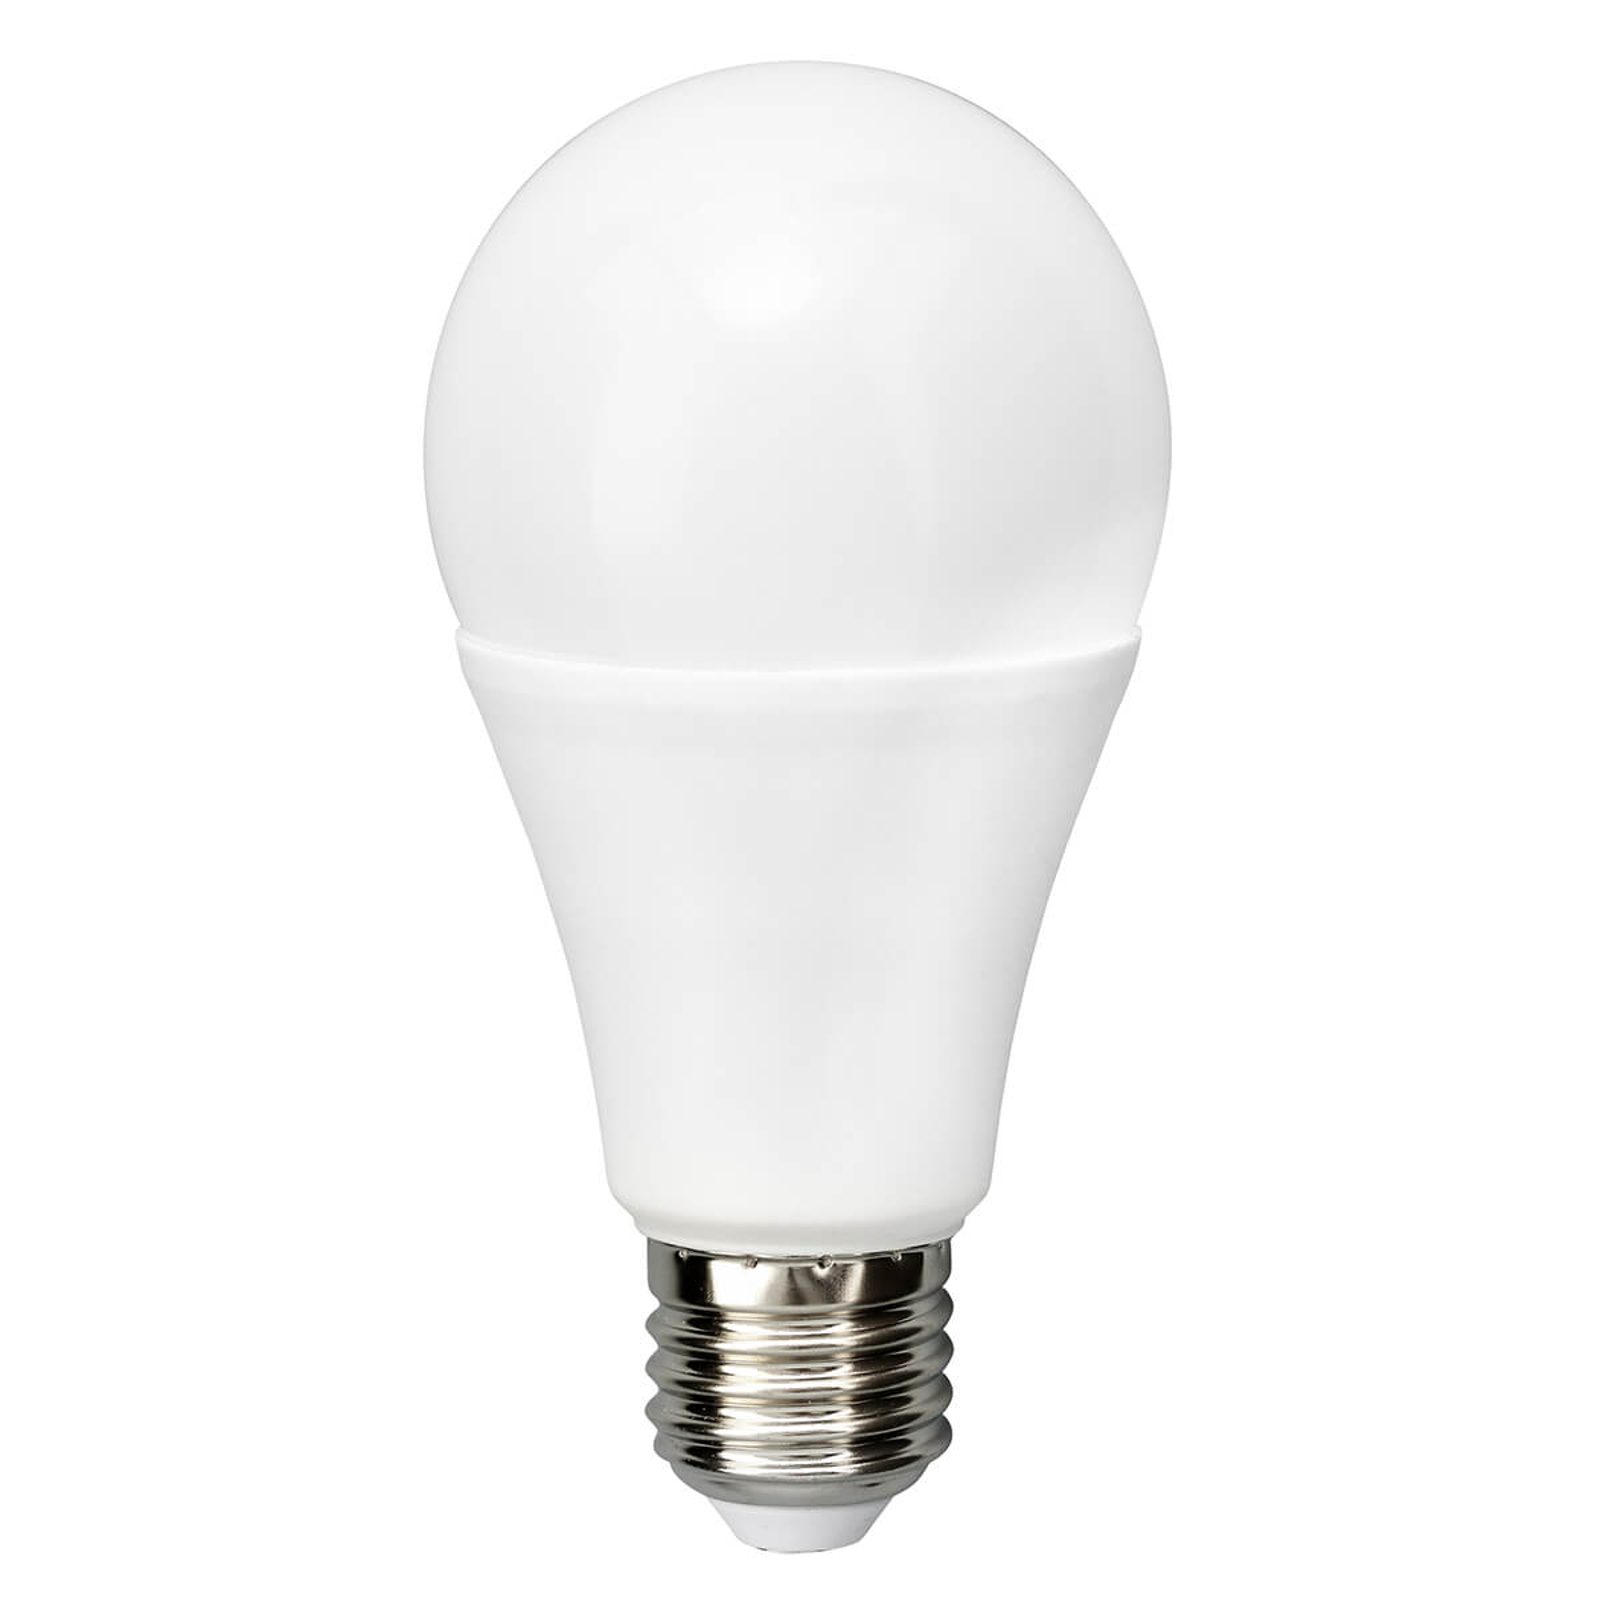 Ampoule LED mate E27 20 W 827